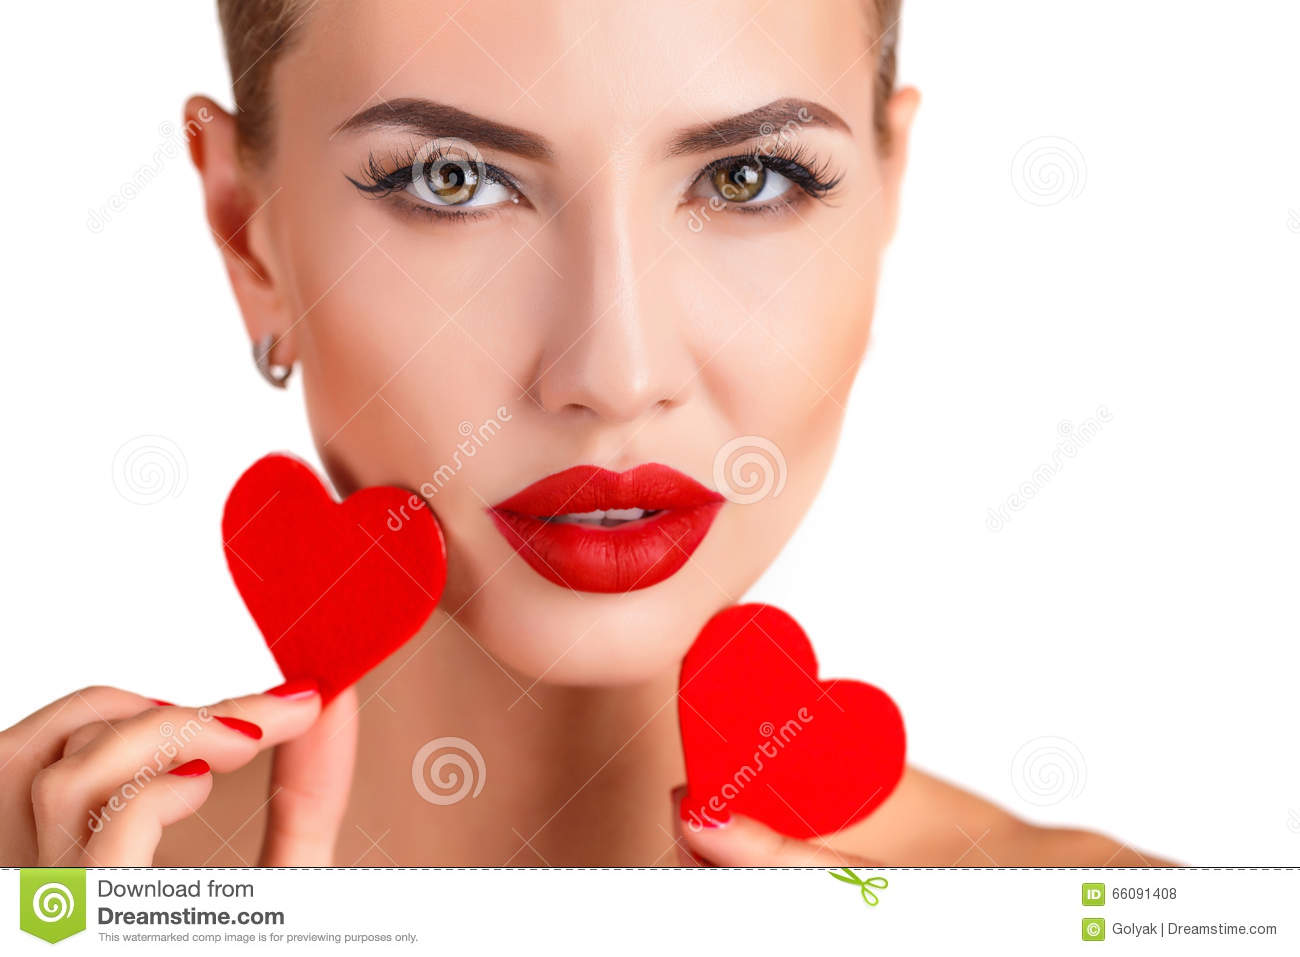 Beautiful woman with bright makeup and red heart